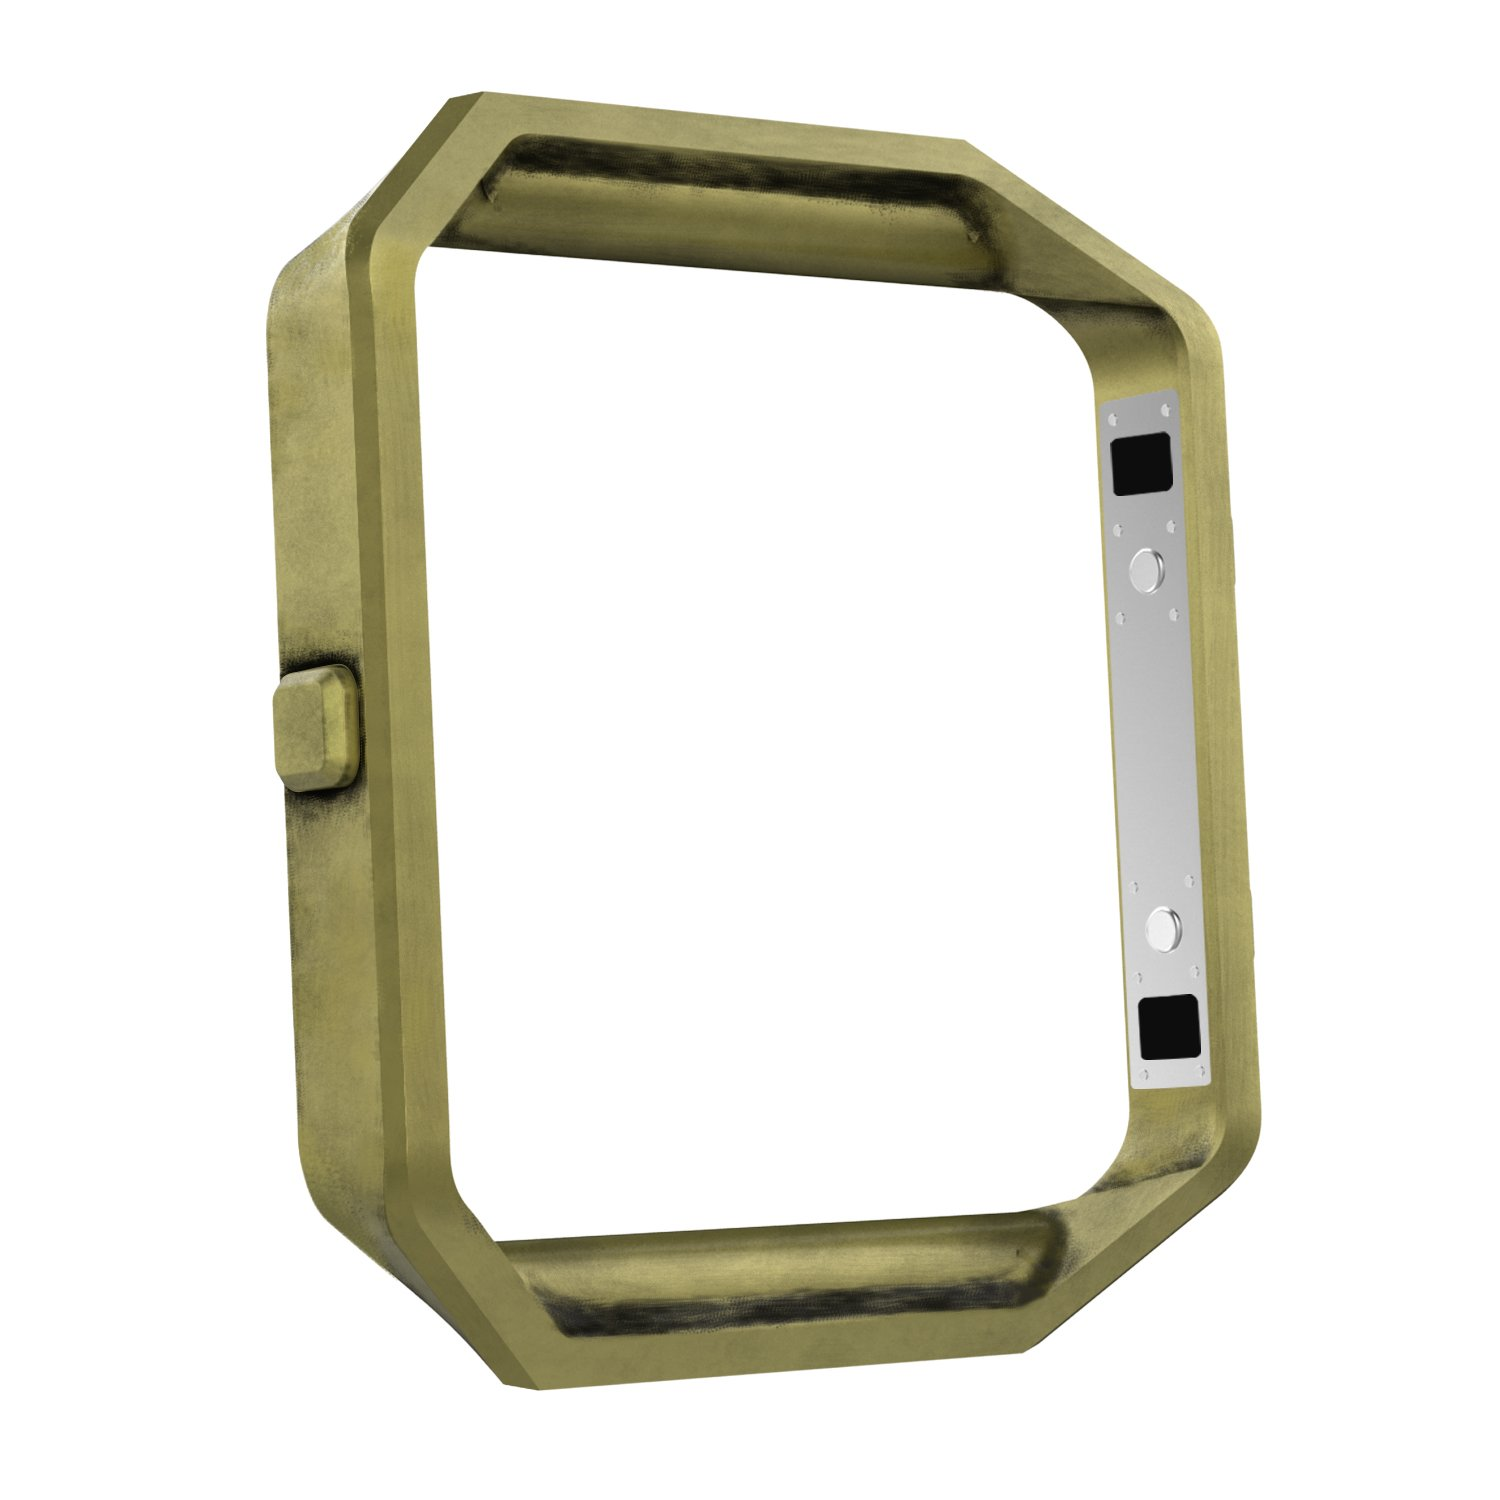 MoKo Fitbit Blaze Band Frame , Stainless Steel Replacement Metal Frame Housing For Fitbit Blaze Smart Watch - Anti Brass